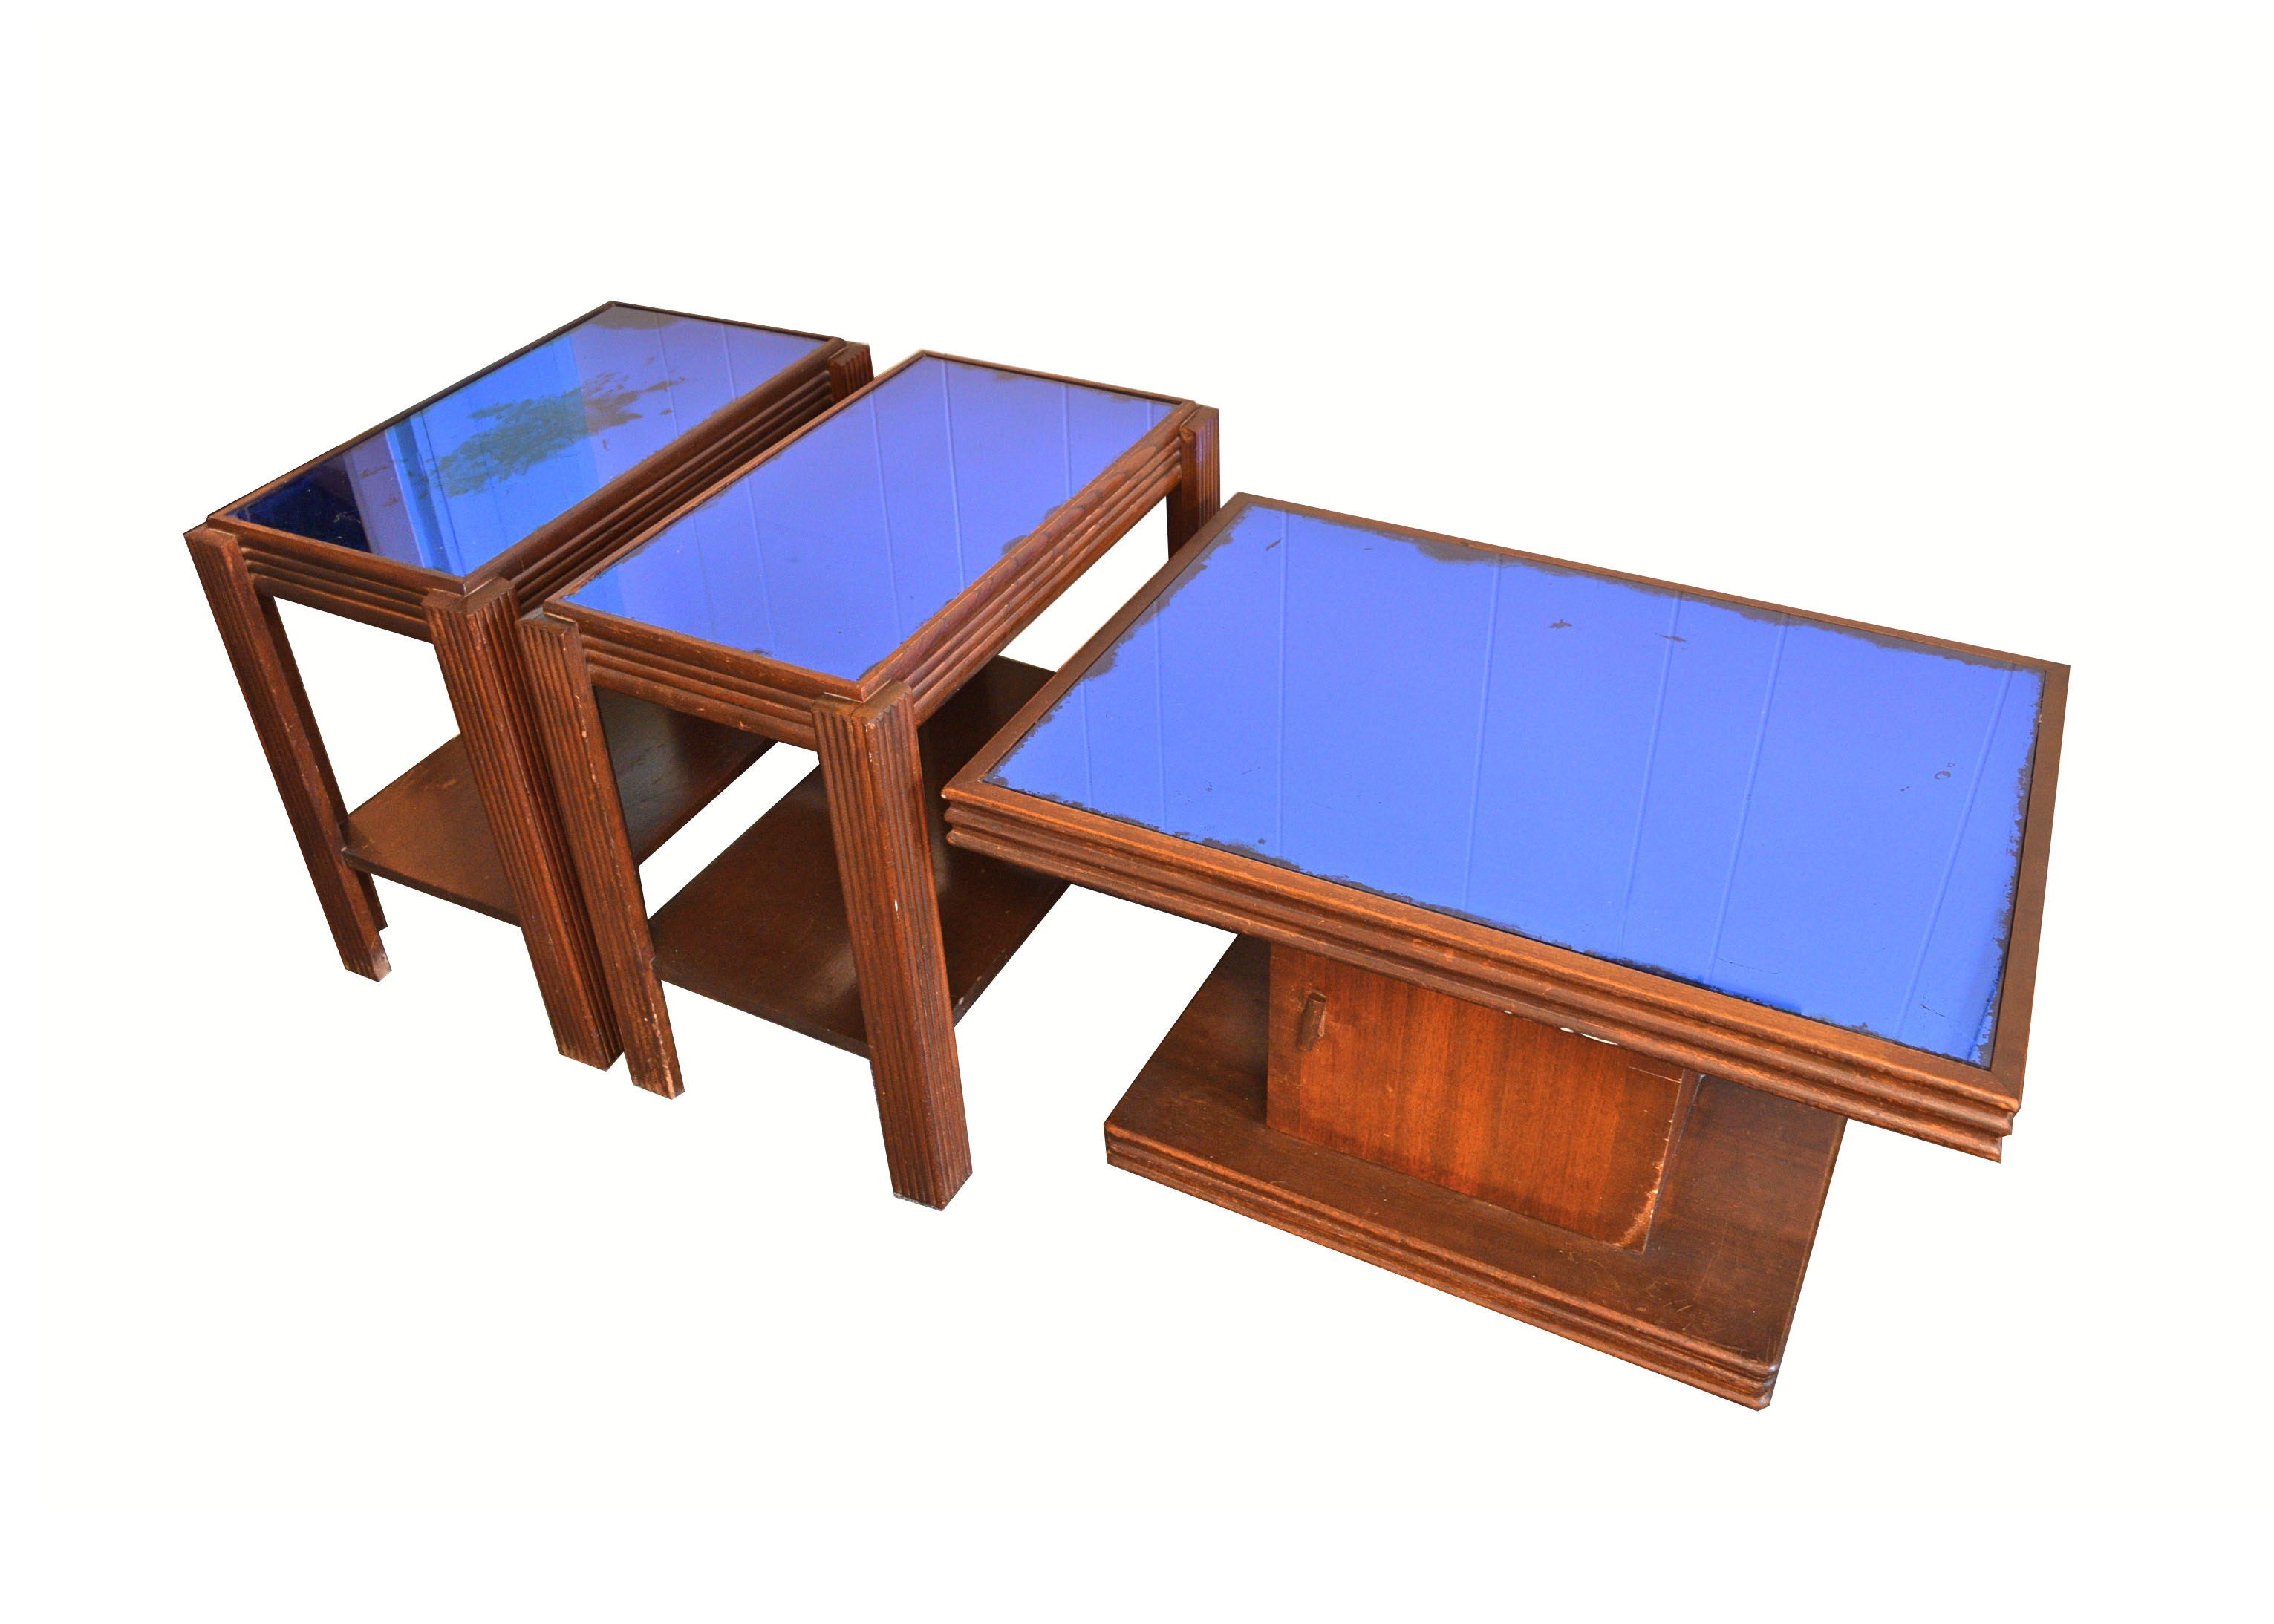 Vintage Art Deco Blue Mirror Coffee And Side Tables